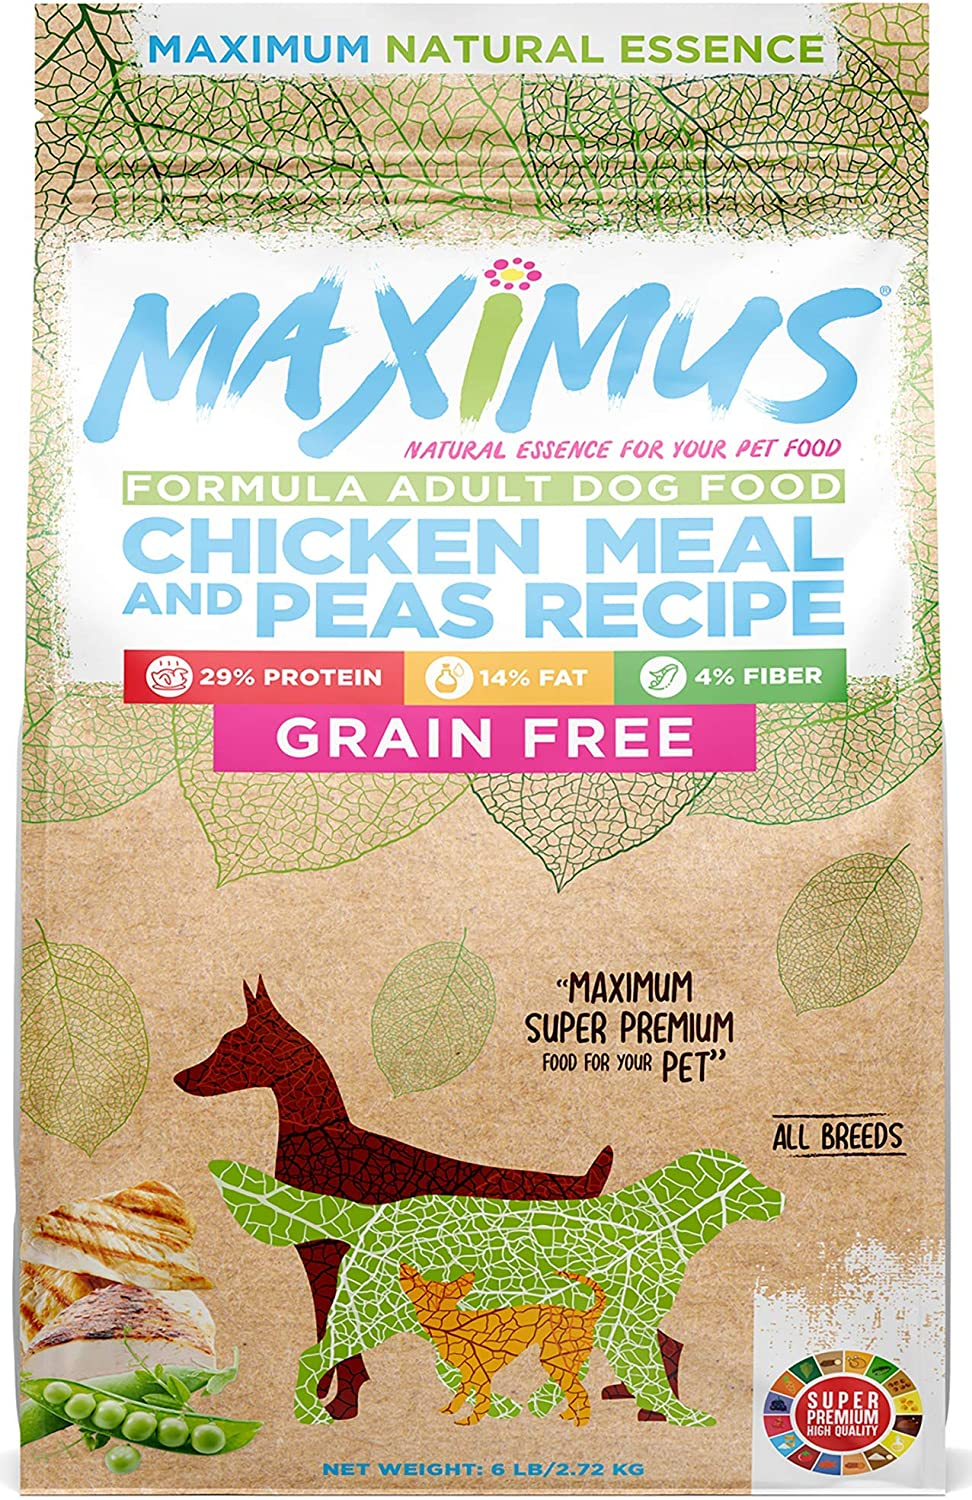 Maximus Super Premium Dog Food - Natural Essence - Dry Grain Free High Protein, Healthy Chicken and Pea Recipe for Your Adult Pet of All Breeds, Balanced for Sensitive Stomach